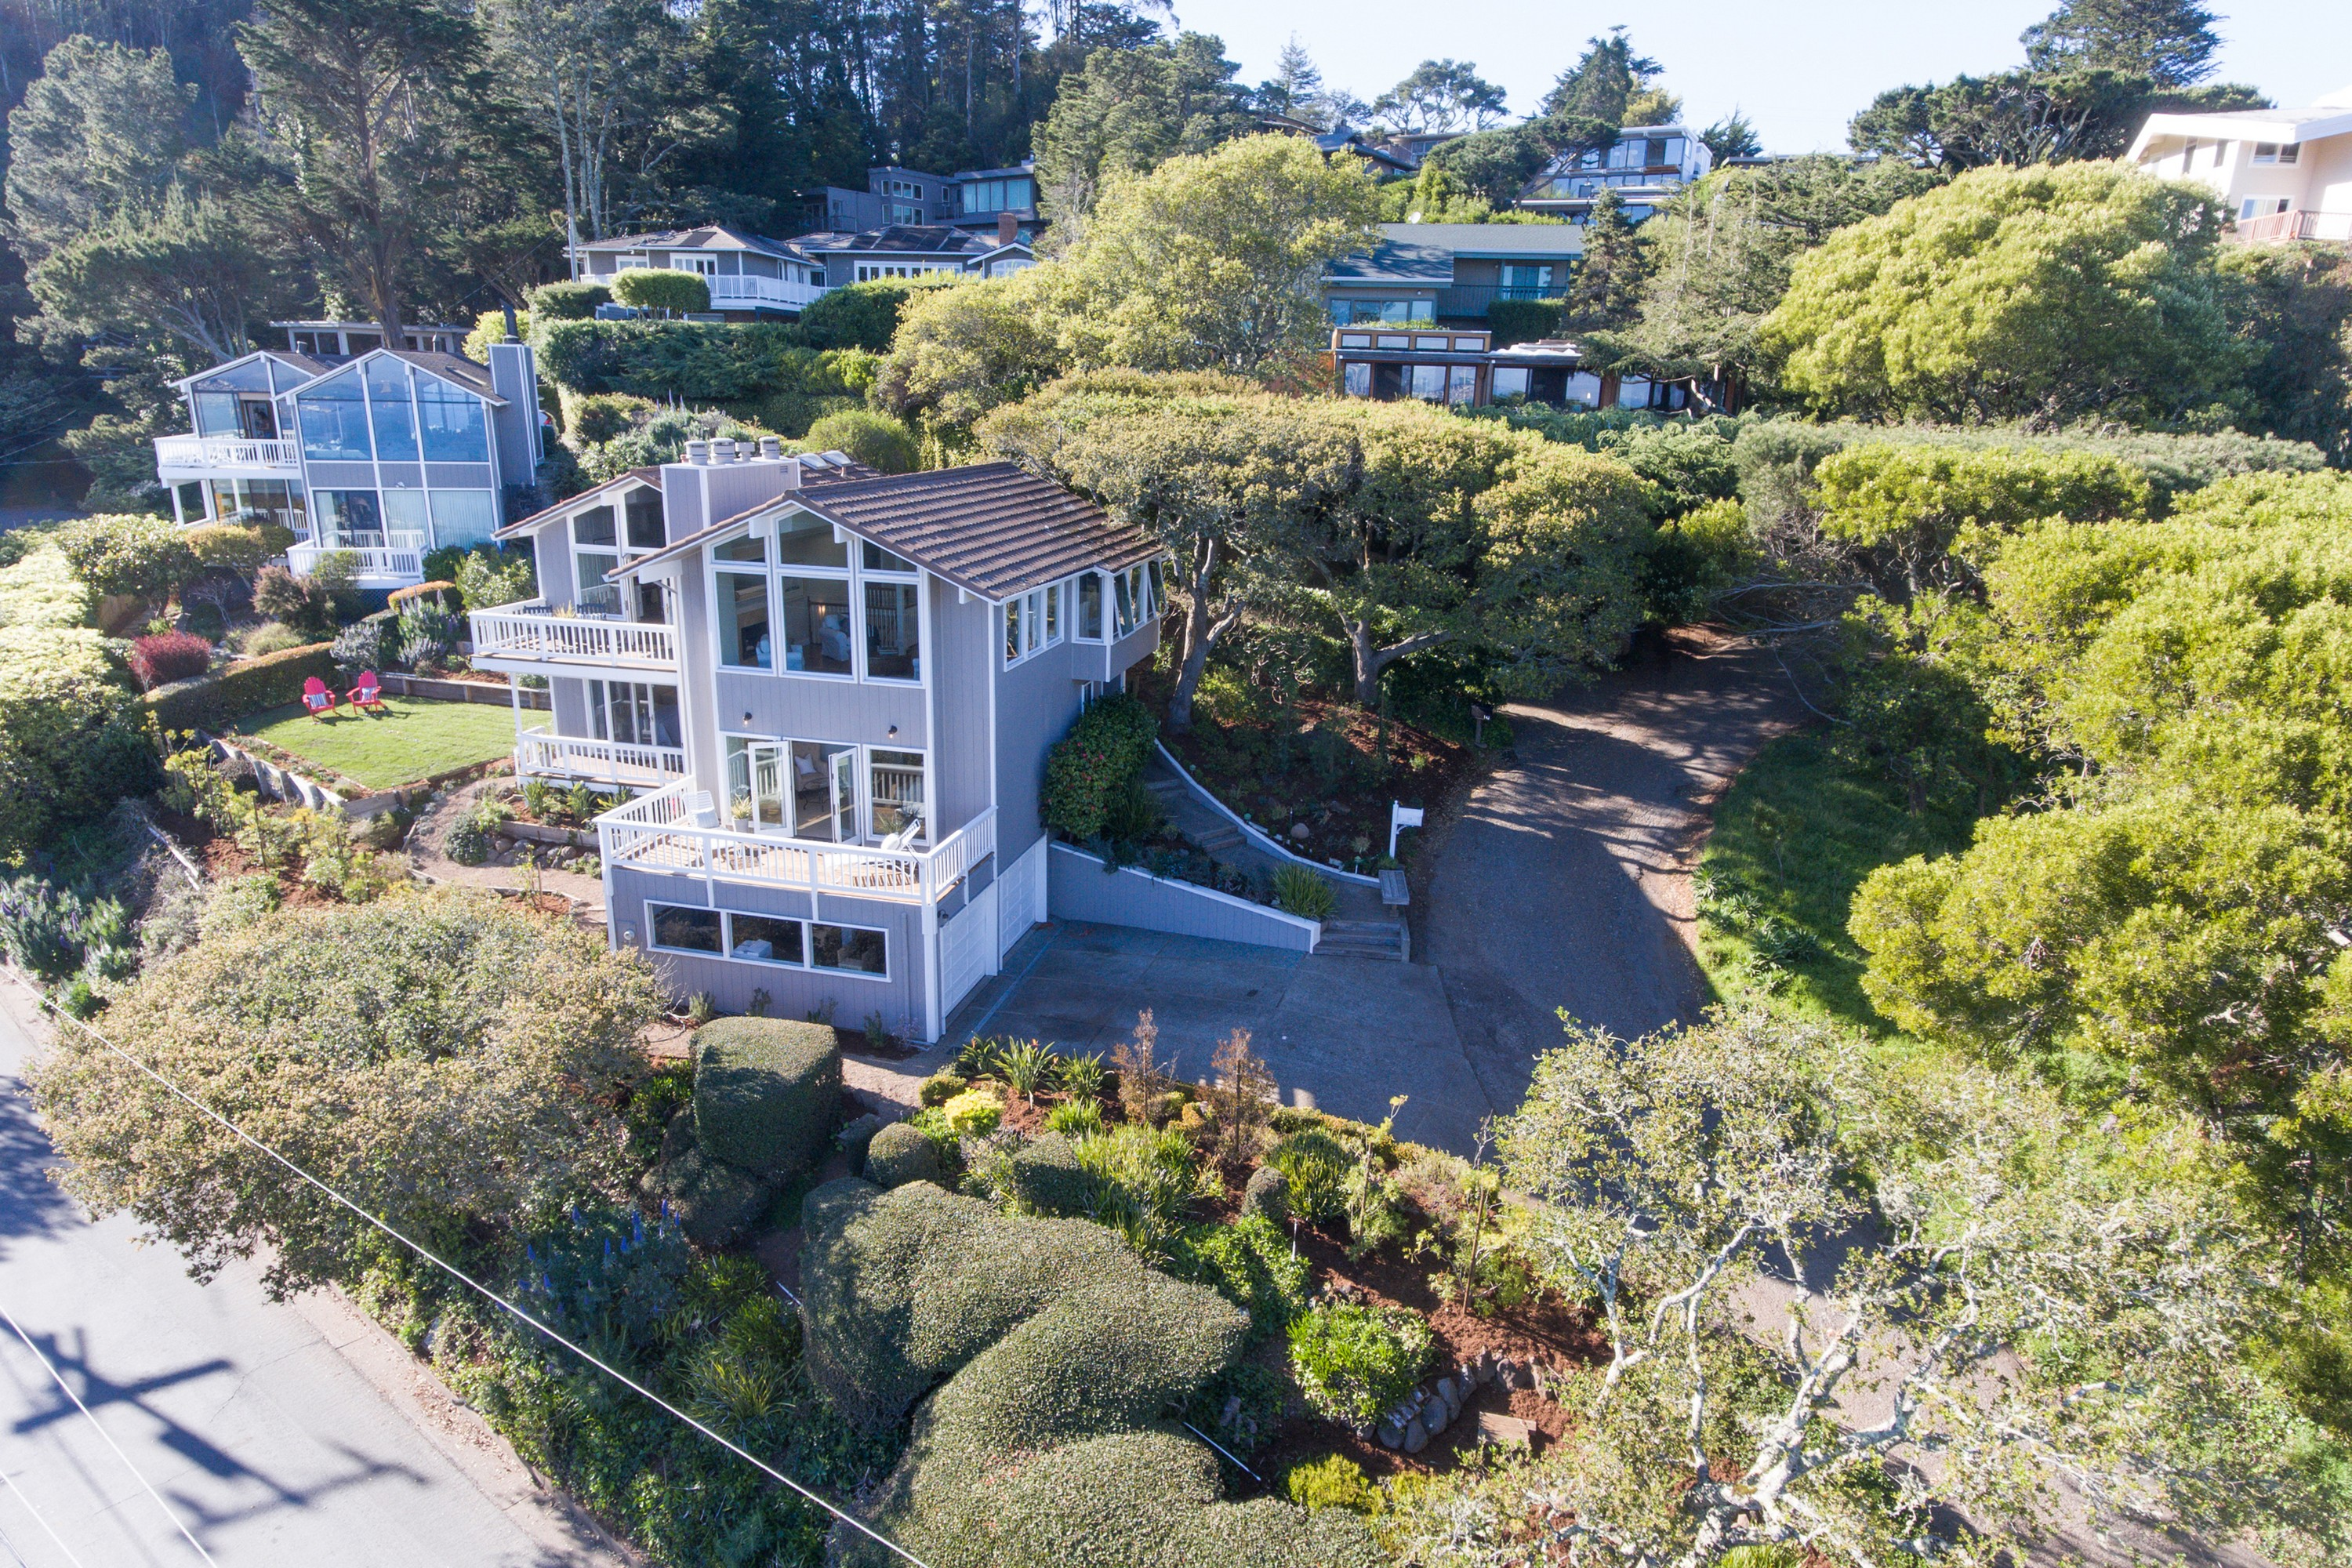 Single Family Home for Sale at Entertaining Sausalito Views 114 Prospect Avenue Sausalito, California 94965 United States